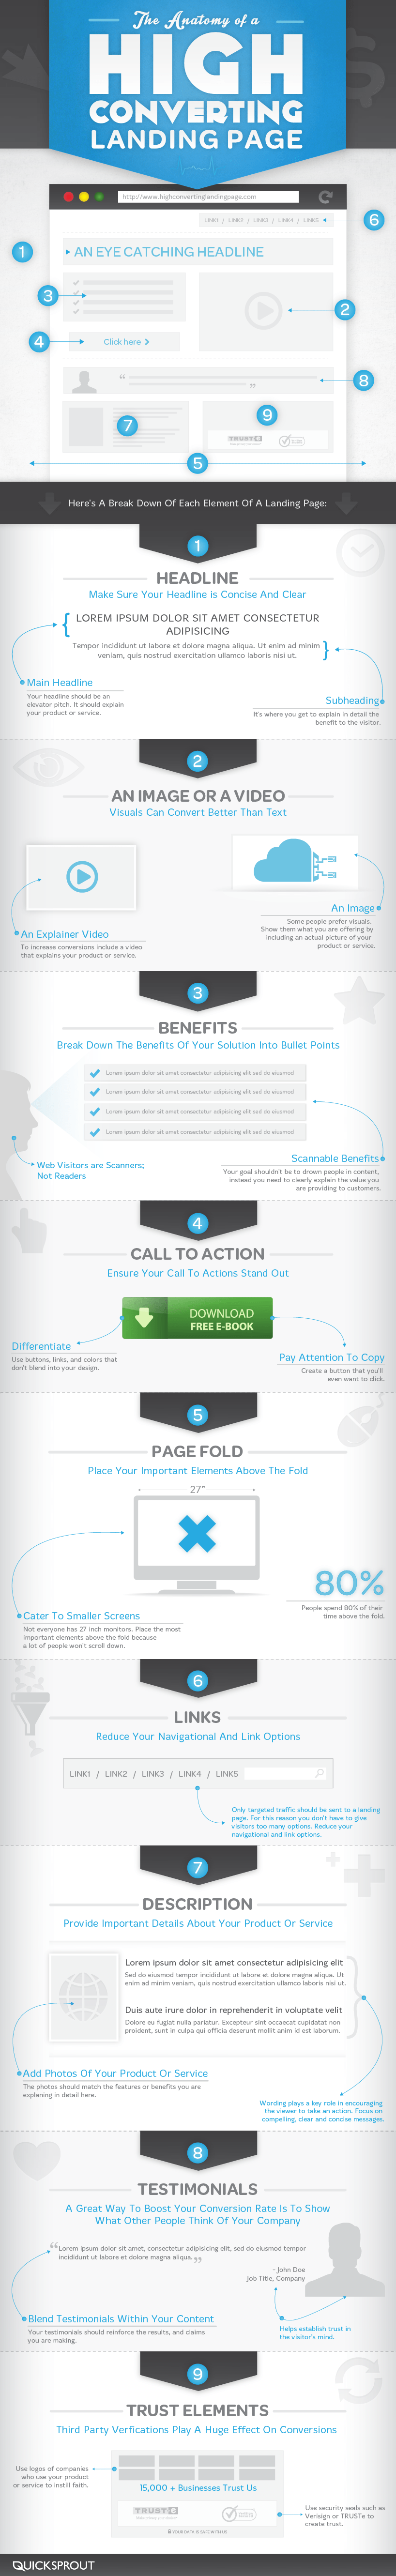 Infographic – The Anatomy of a High Converting Landing Page